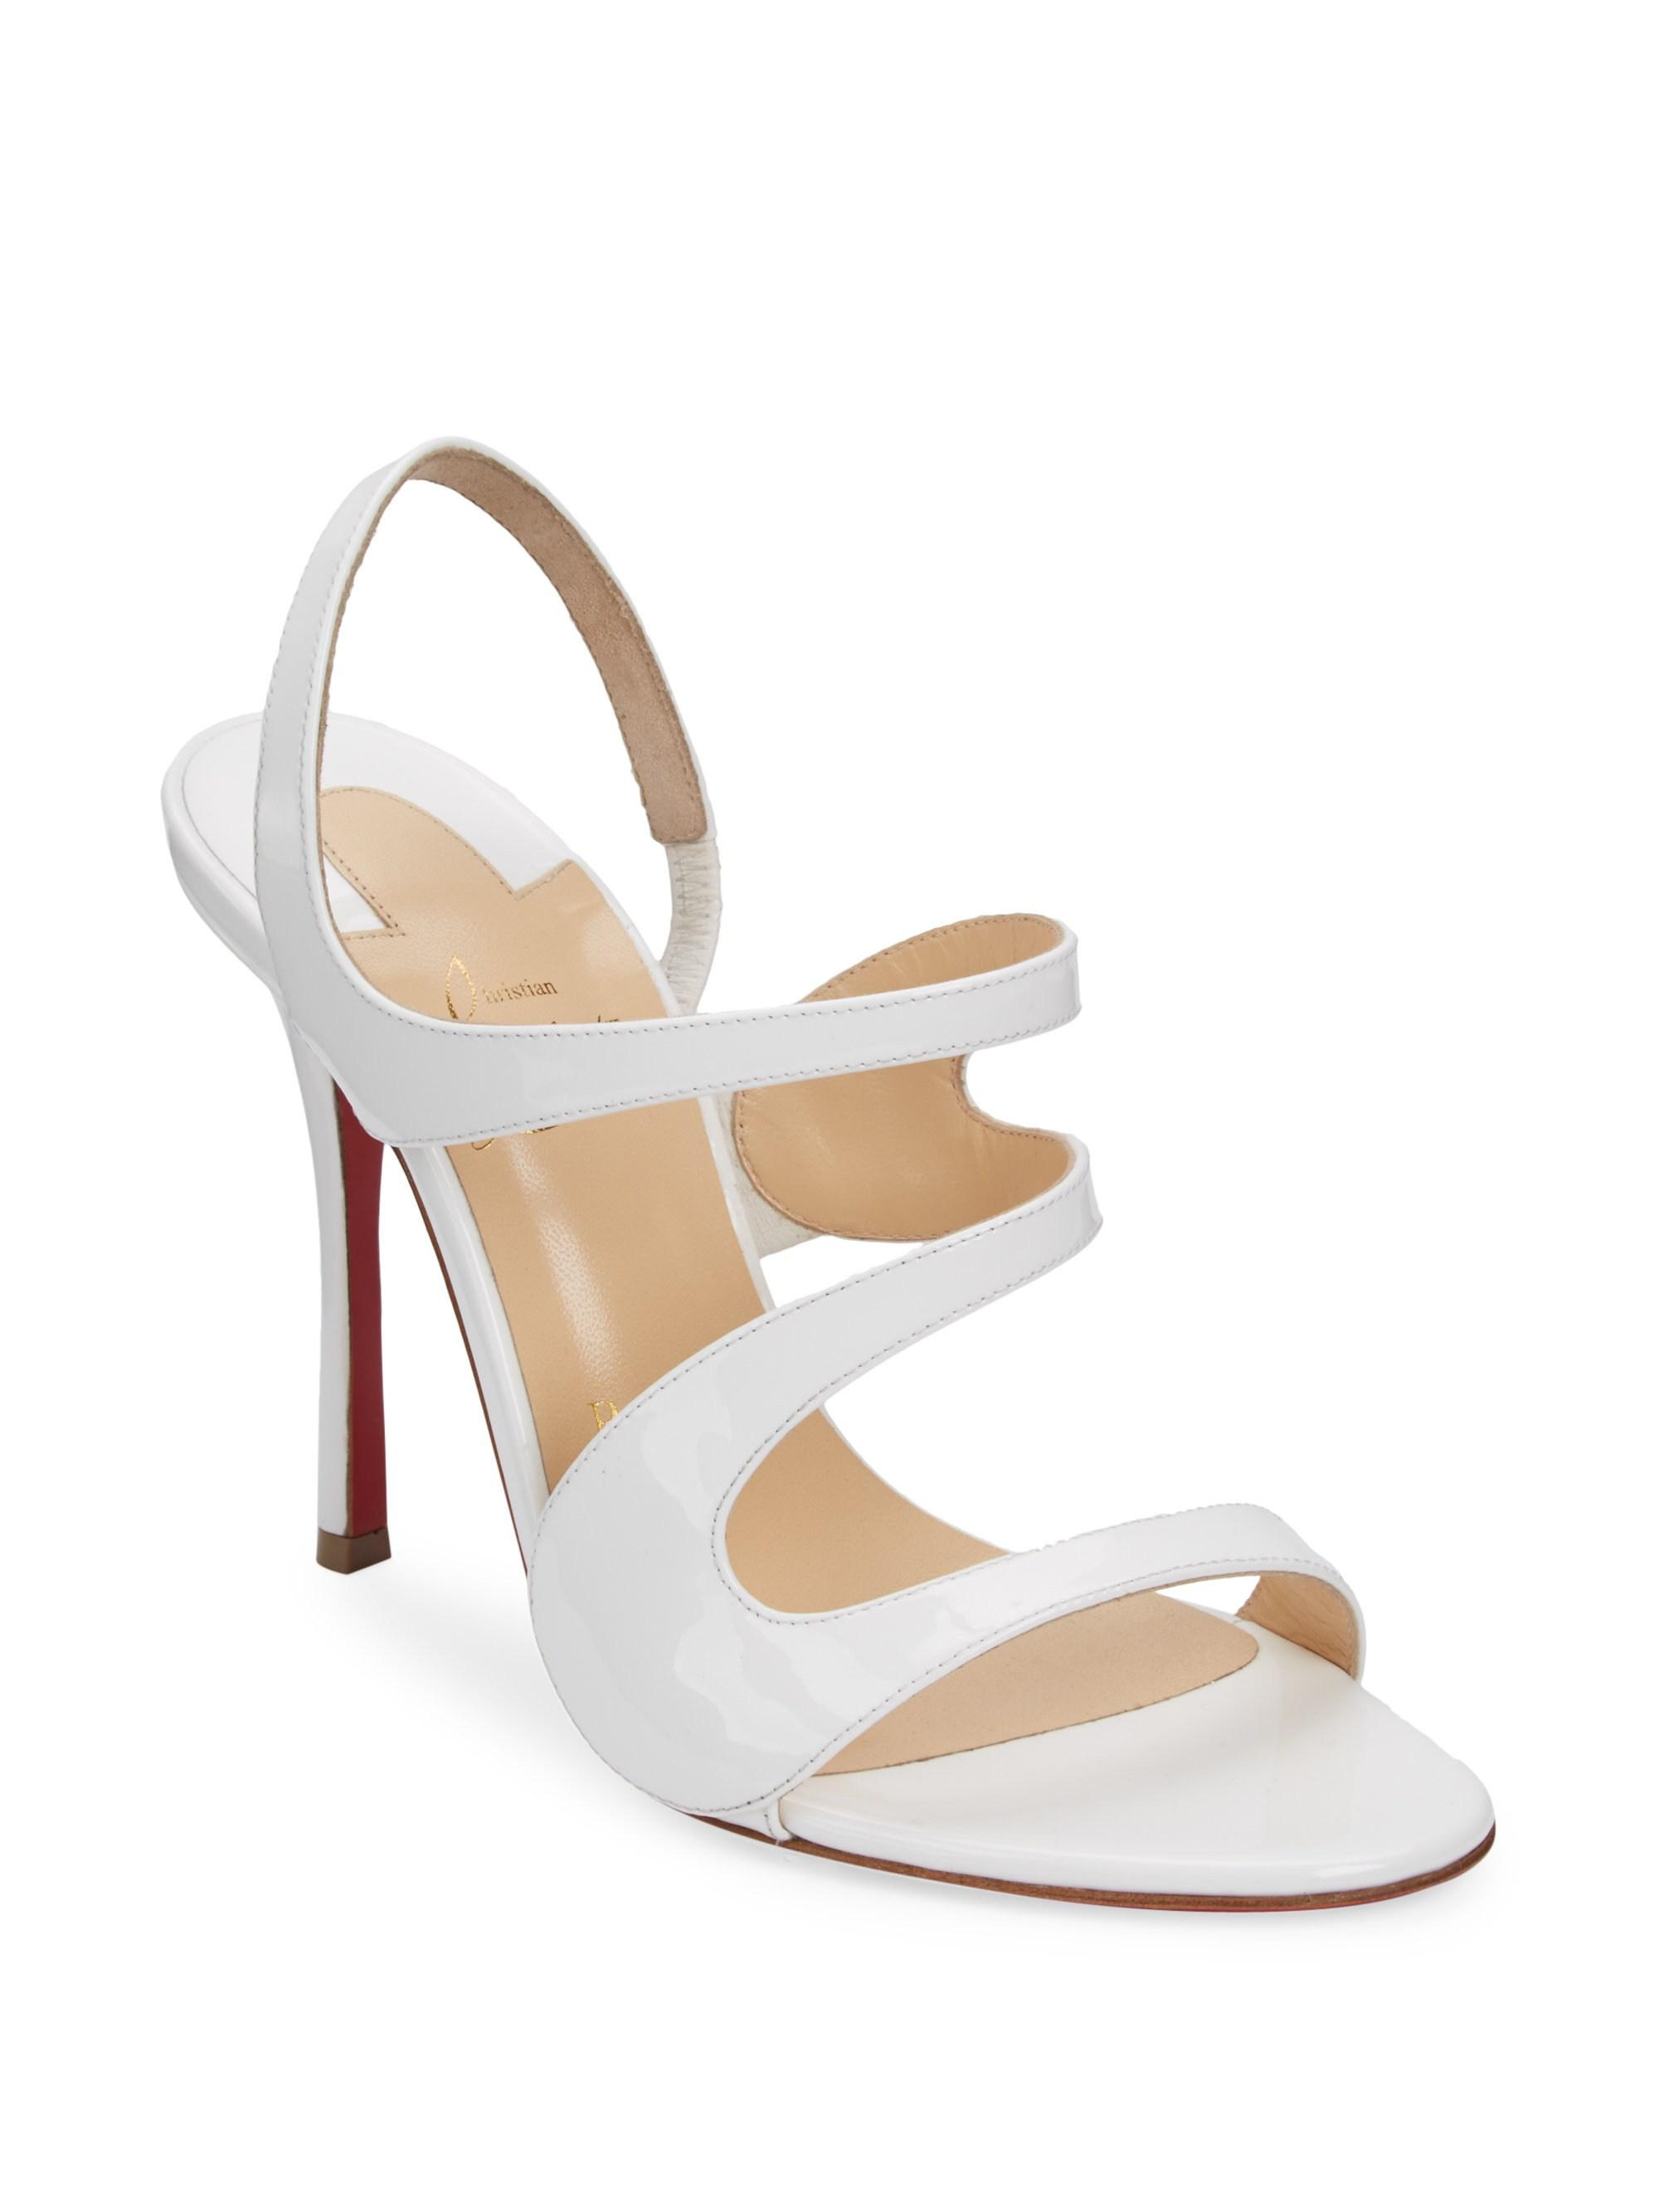 b2c3a2d2f328 Christian Louboutin Vavazou 100 Leather Sandals in White - Lyst